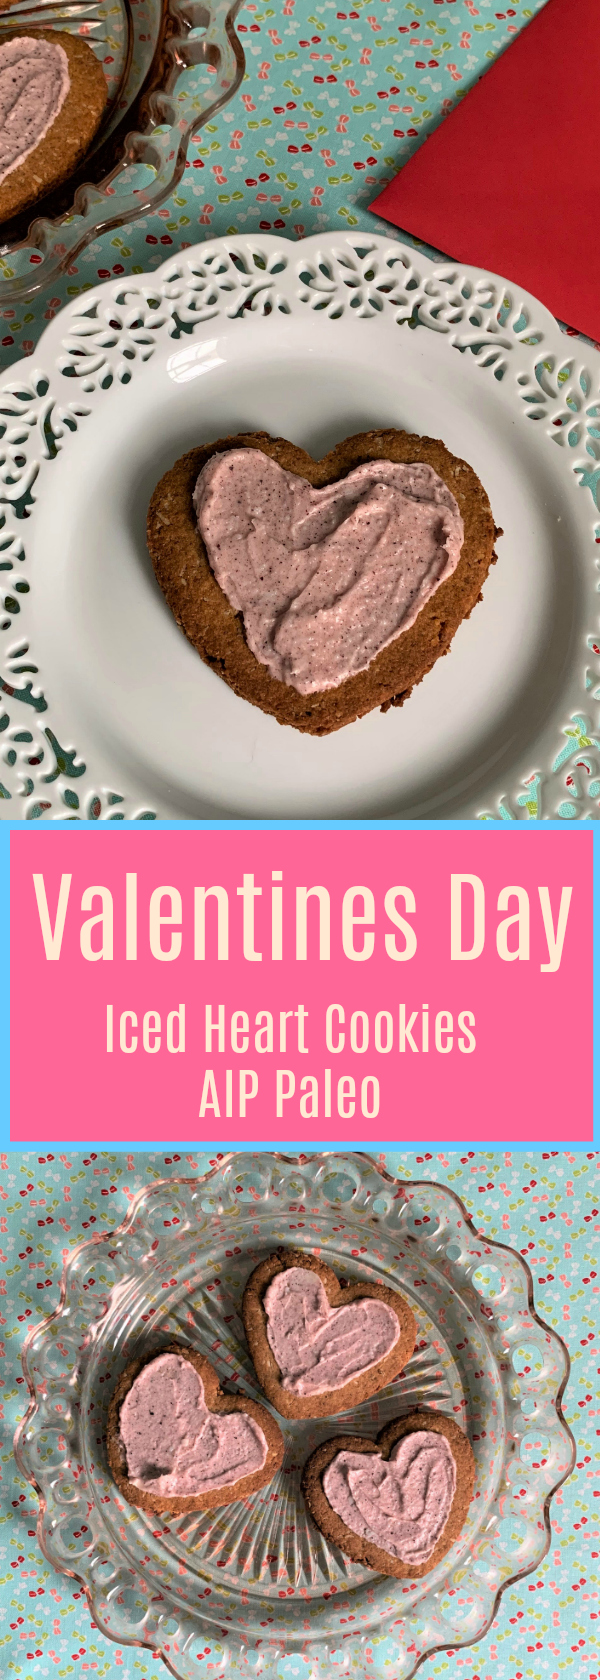 These Heart Felt Valentines Day Iced Cookies say I love you! They are AIP Paleo, egg, dairy, nut, and grain free!